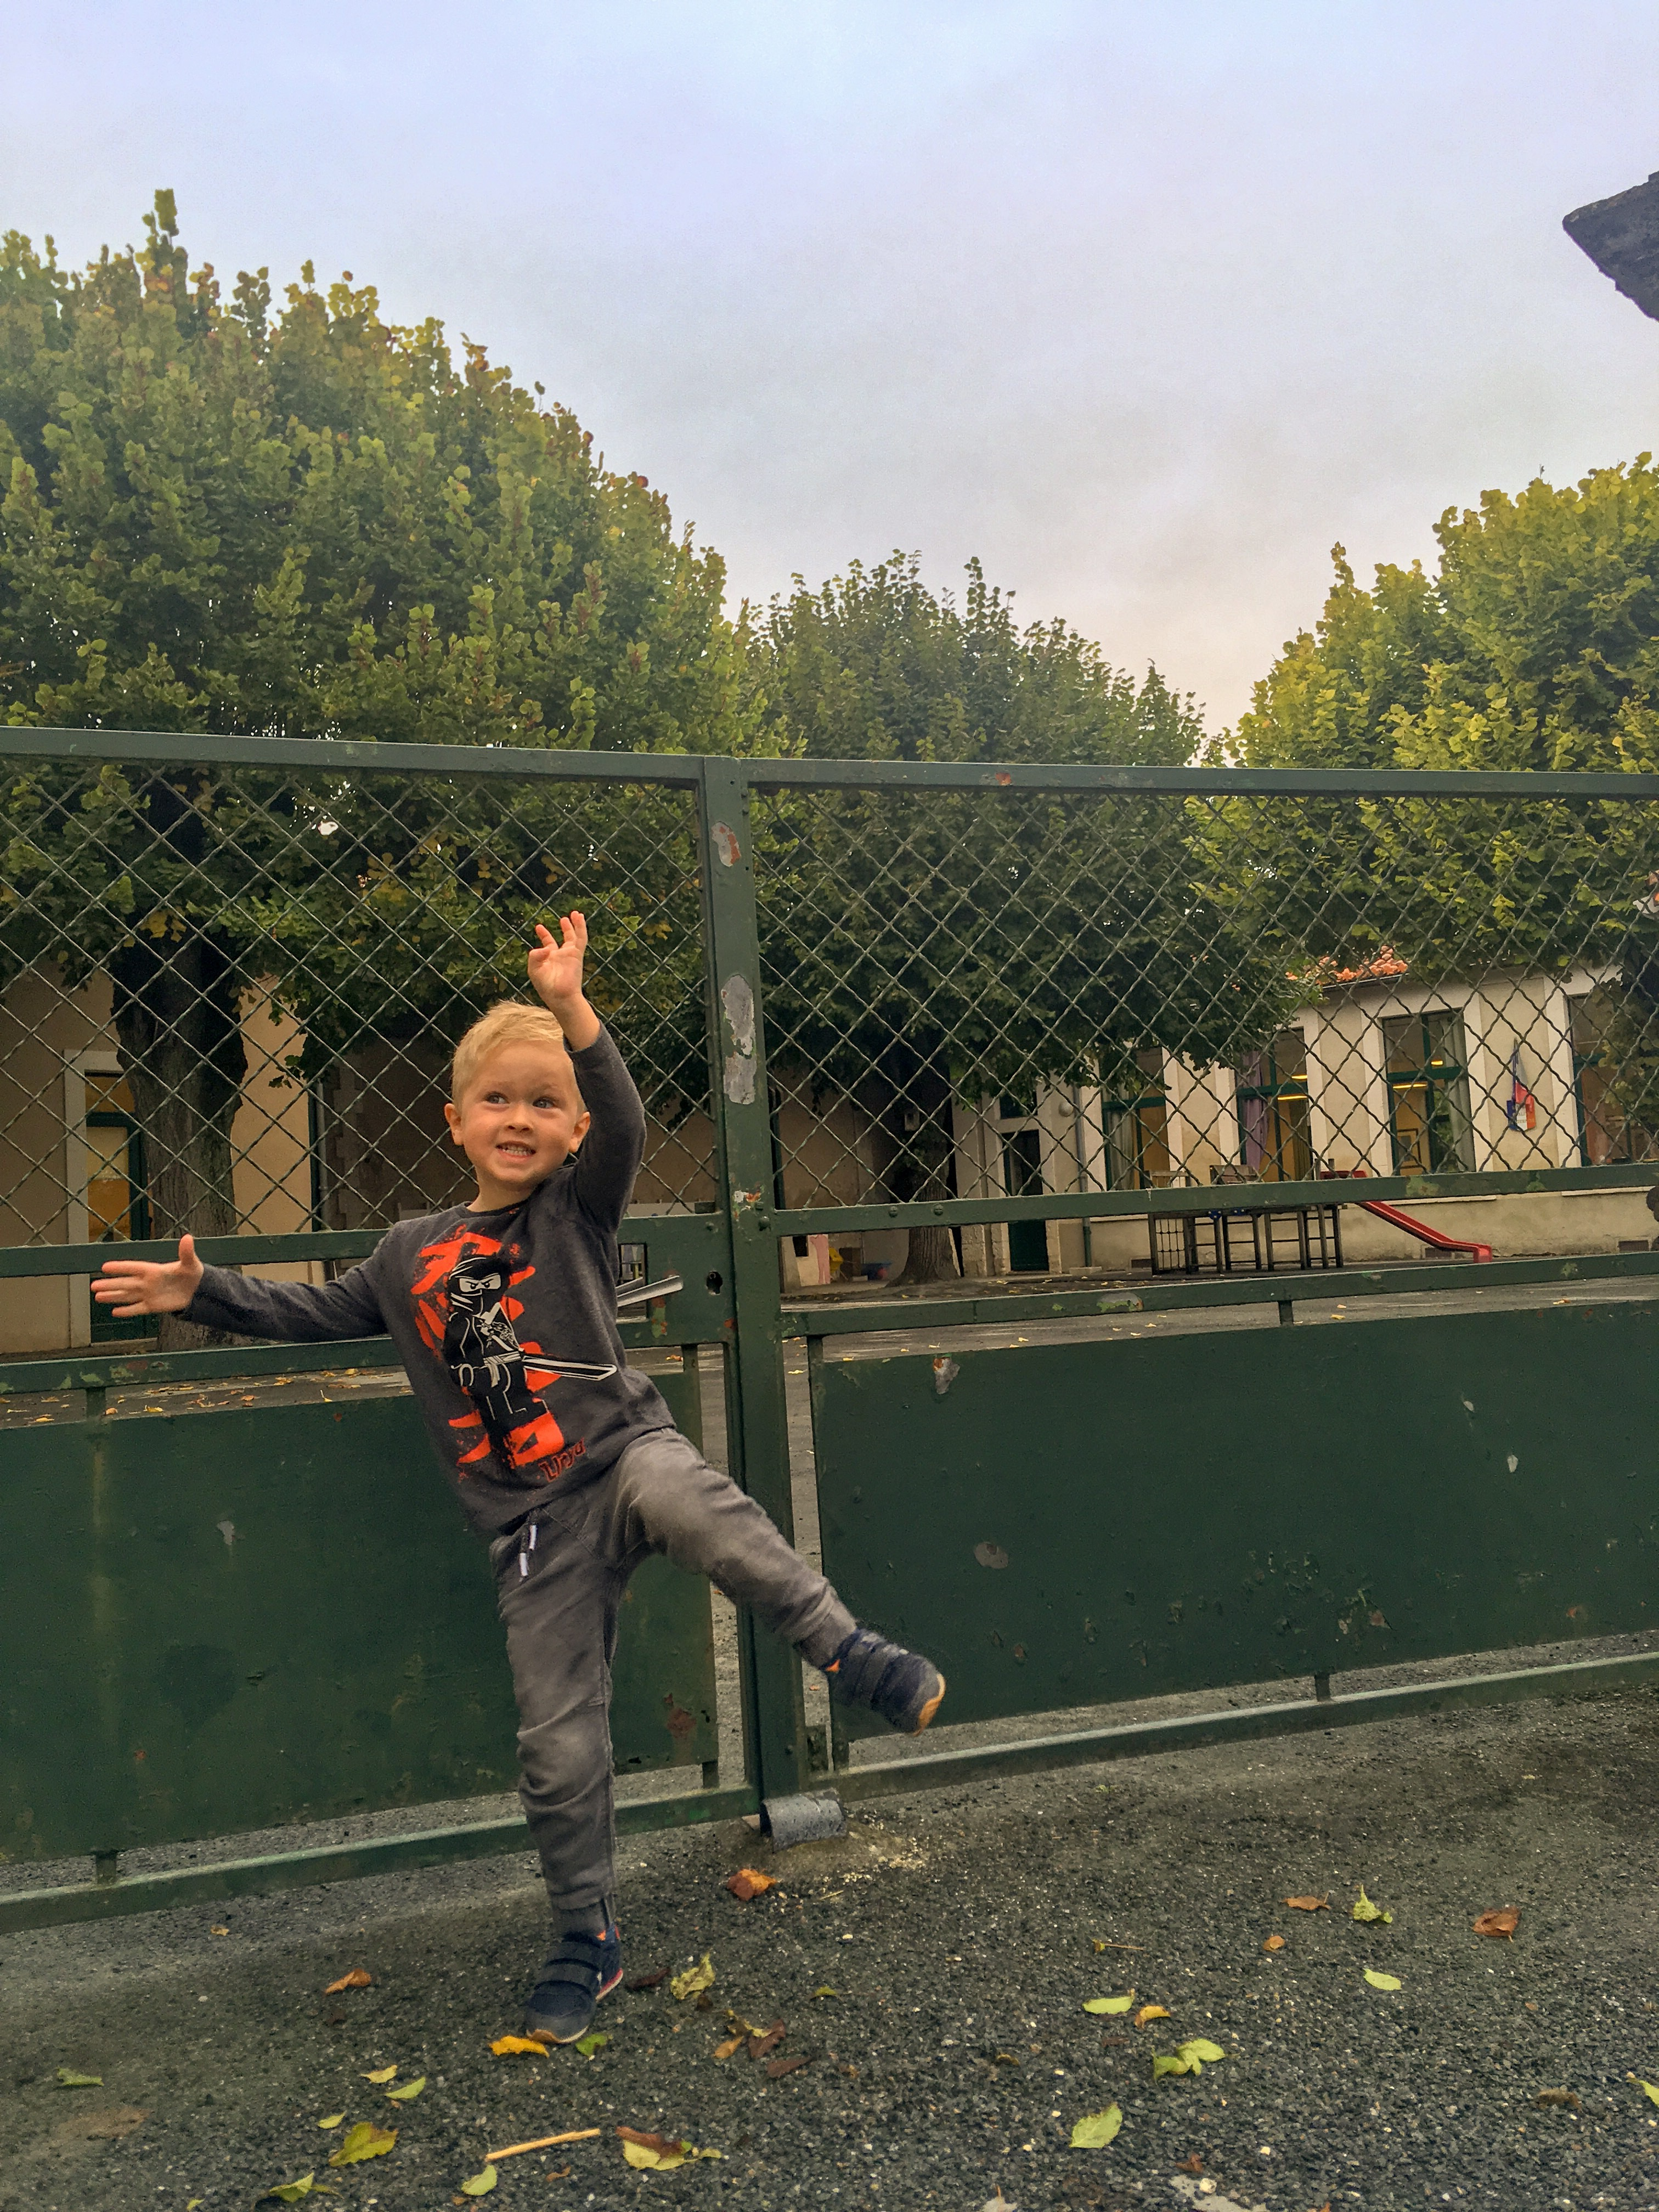 Lucas stood at the school gates